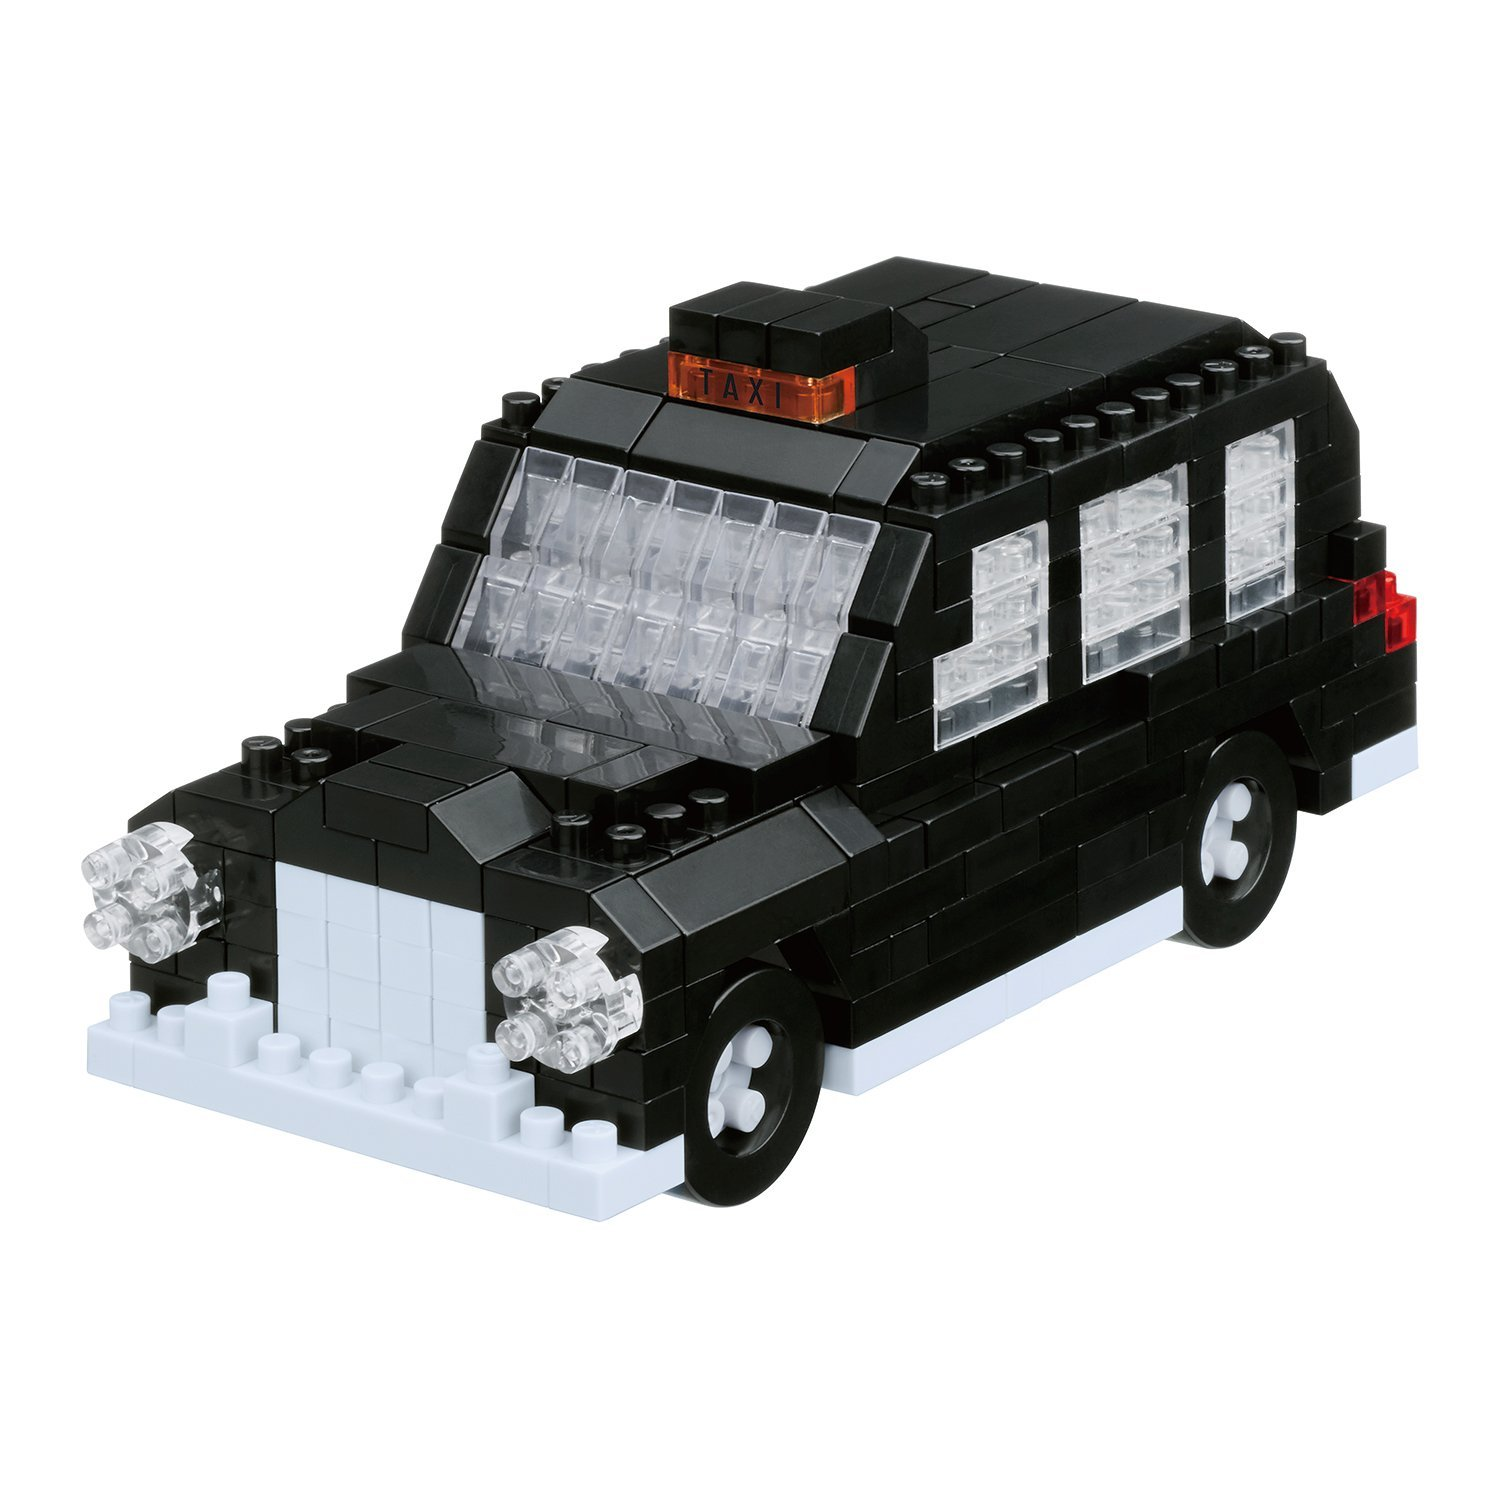 London Taxi Building Kit, Take a ride around London England in a classic black English... by